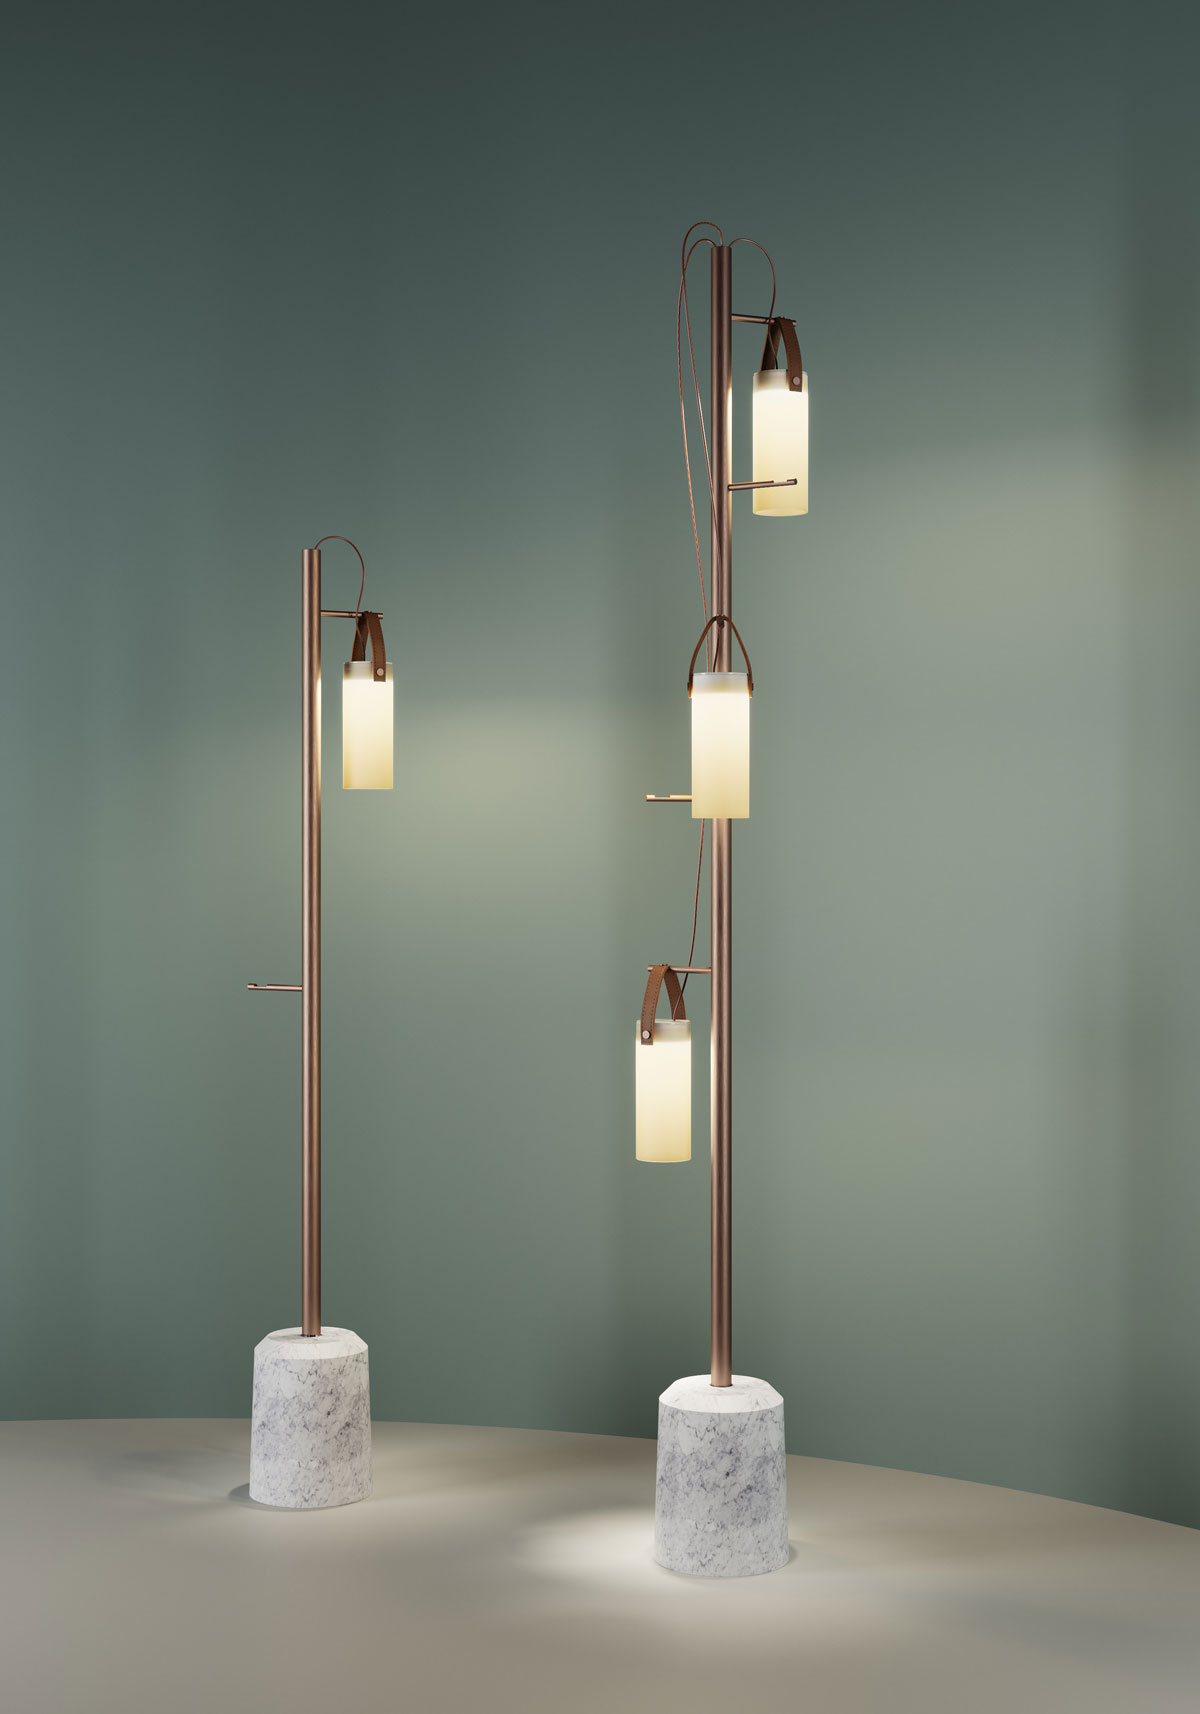 Galerie lamp collection is inspired aesthetically and functionally by the antique oil lamps of the Belle‭ ‬‮!‬epoque‭.‬